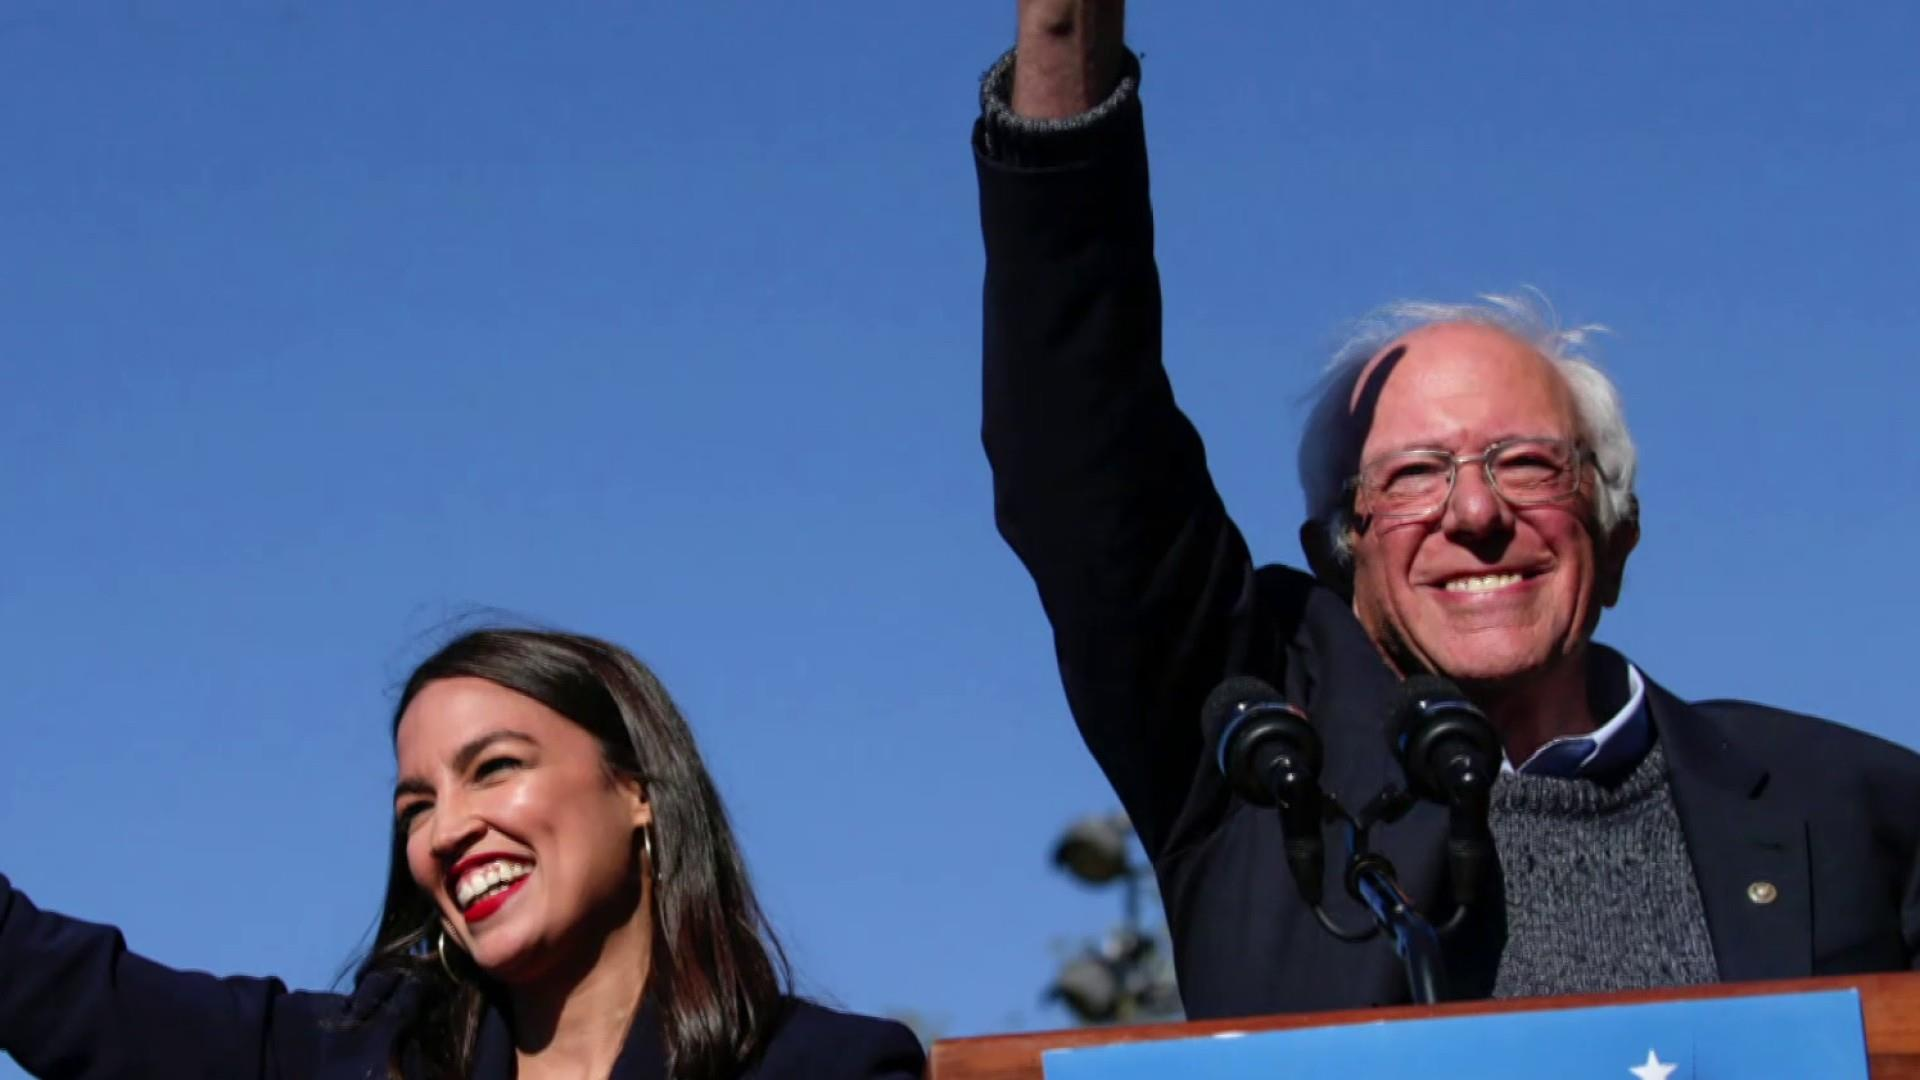 Alexandria Ocasio-Cortez endorses Bernie Sanders at his first rally since heart attack